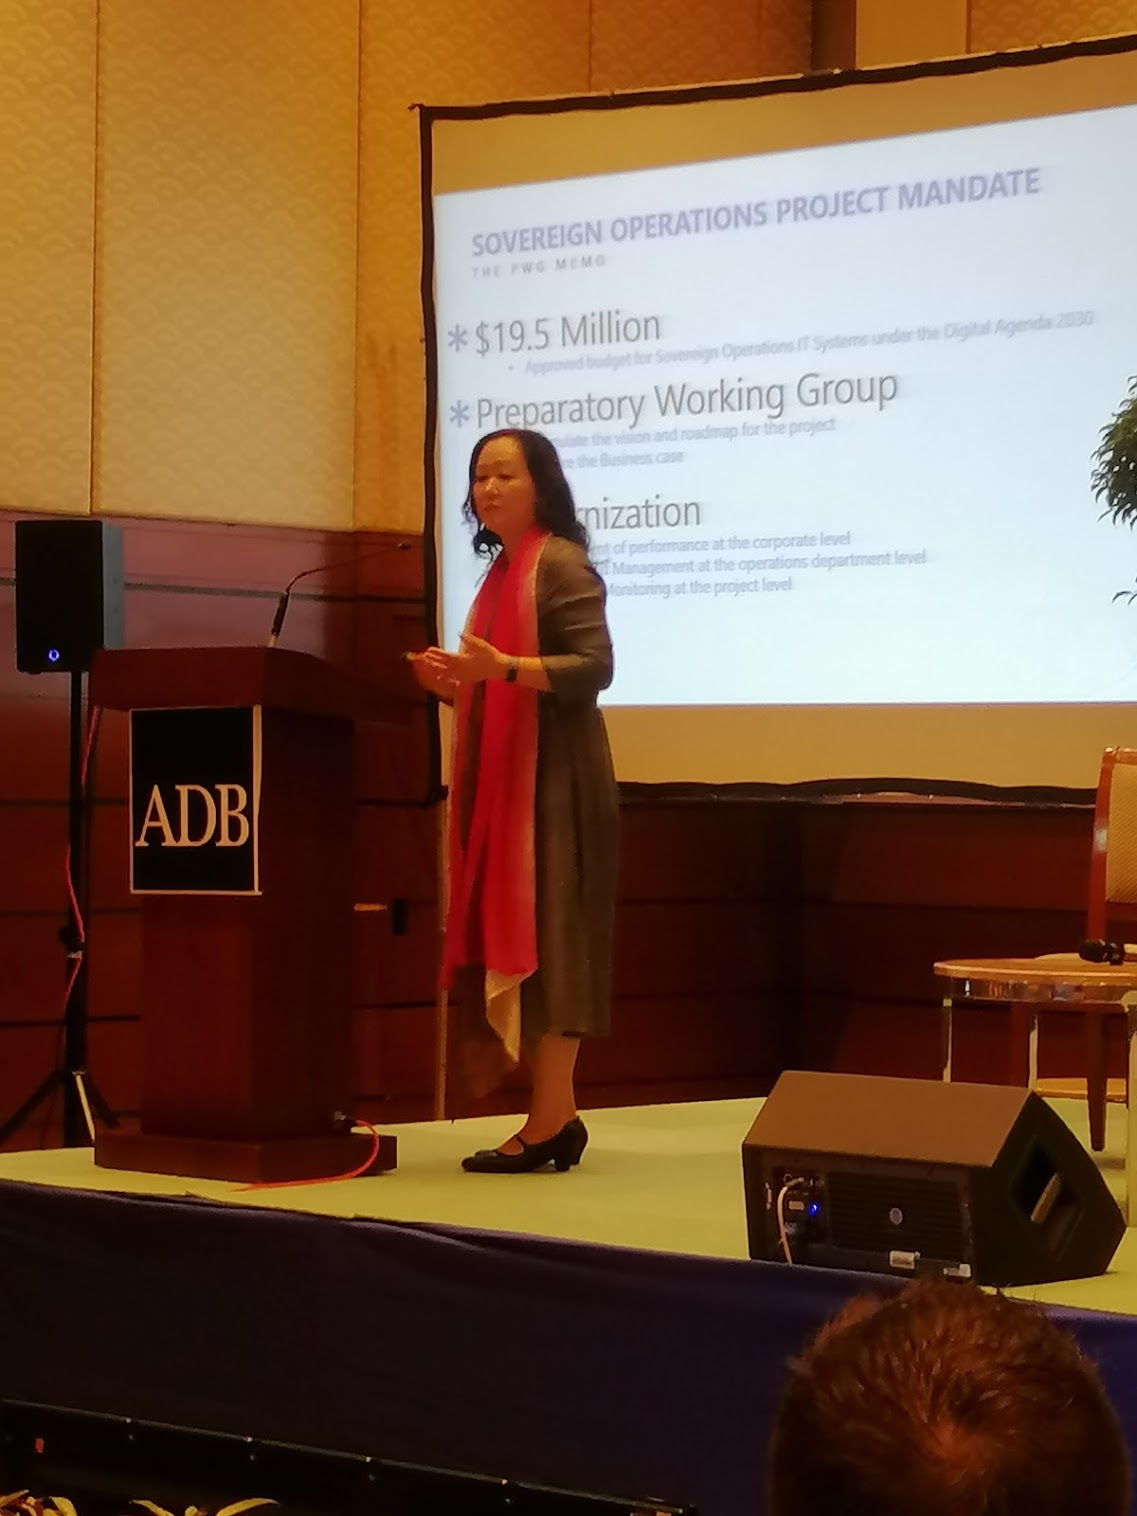 1:38 p.m. - F. Cleo Kawawaki, Deputy Director General for SERD, opens the floor by showing the current data of Sovereign Operations in regards to the current tools of ADB